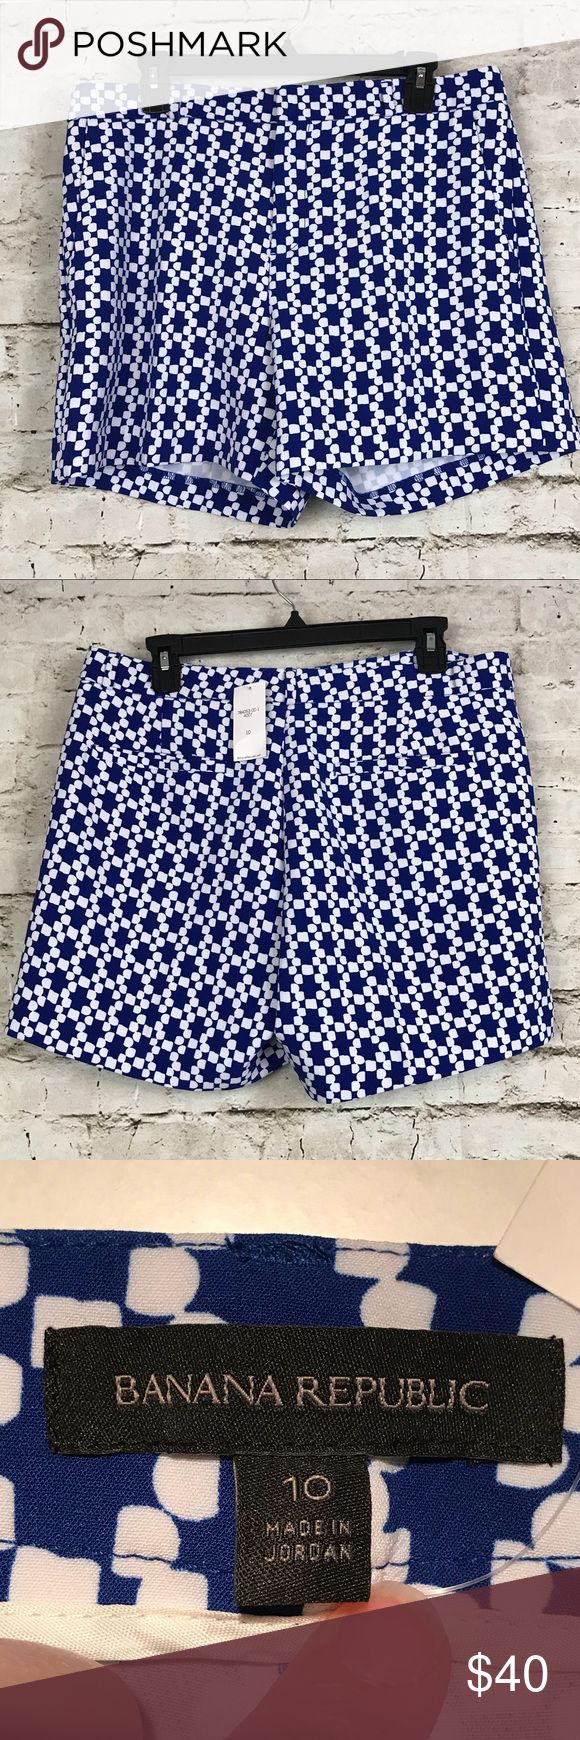 "Banana Republic NWT Women's Size 10 Shorts Banana Republic NWT Women's Size 10 Geometric Blue White Shorts Flat Front  17"" across waist and 5"" inseam Banana Republic Shorts"